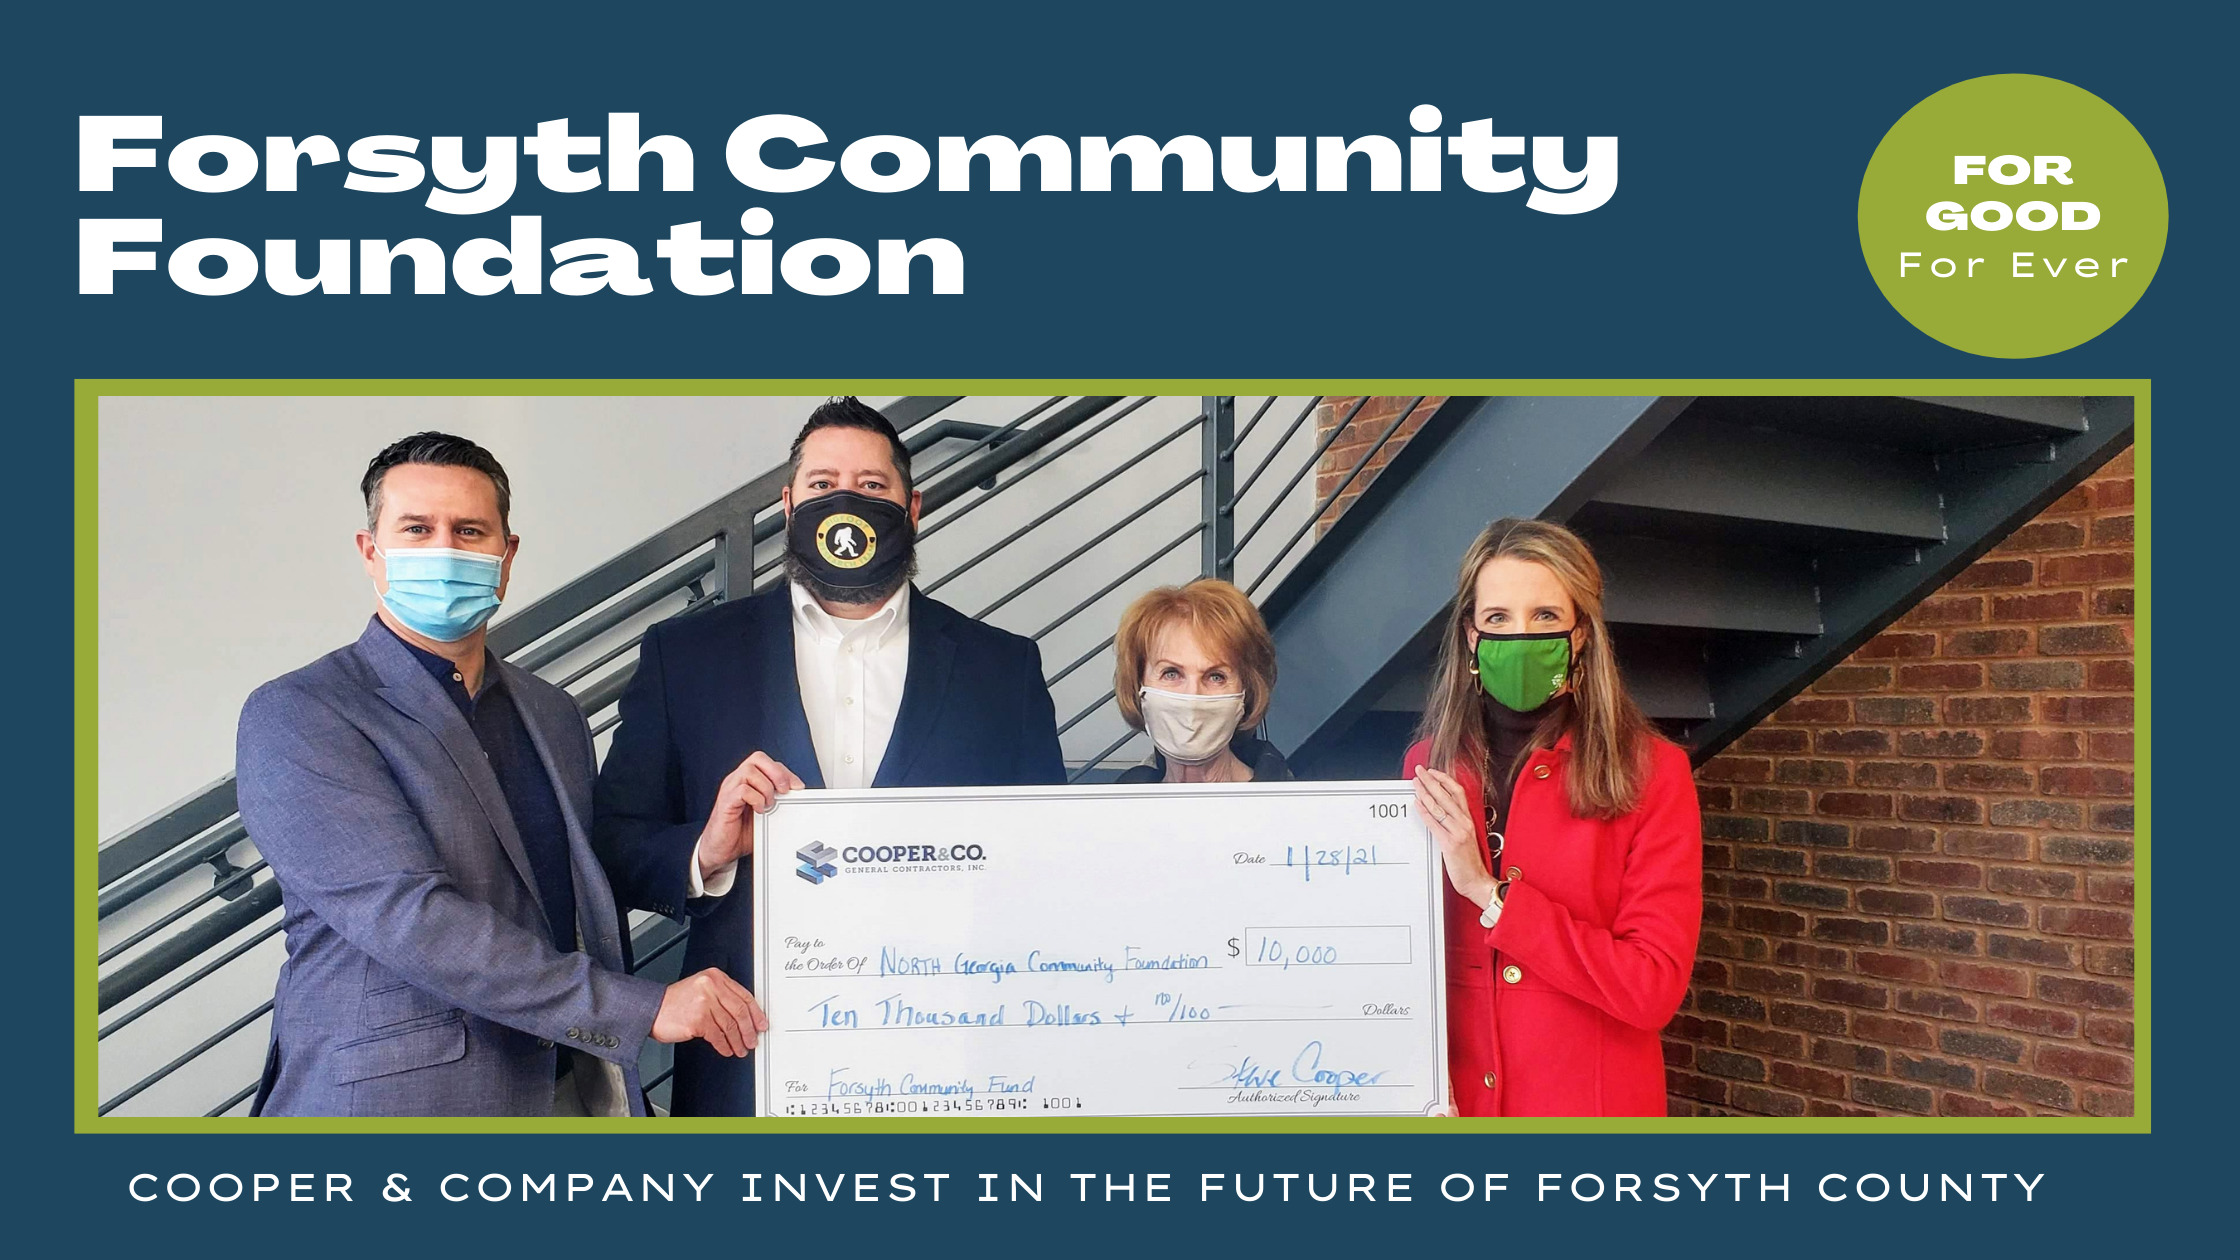 Cooper & Company Invest in the Future of Forsyth County